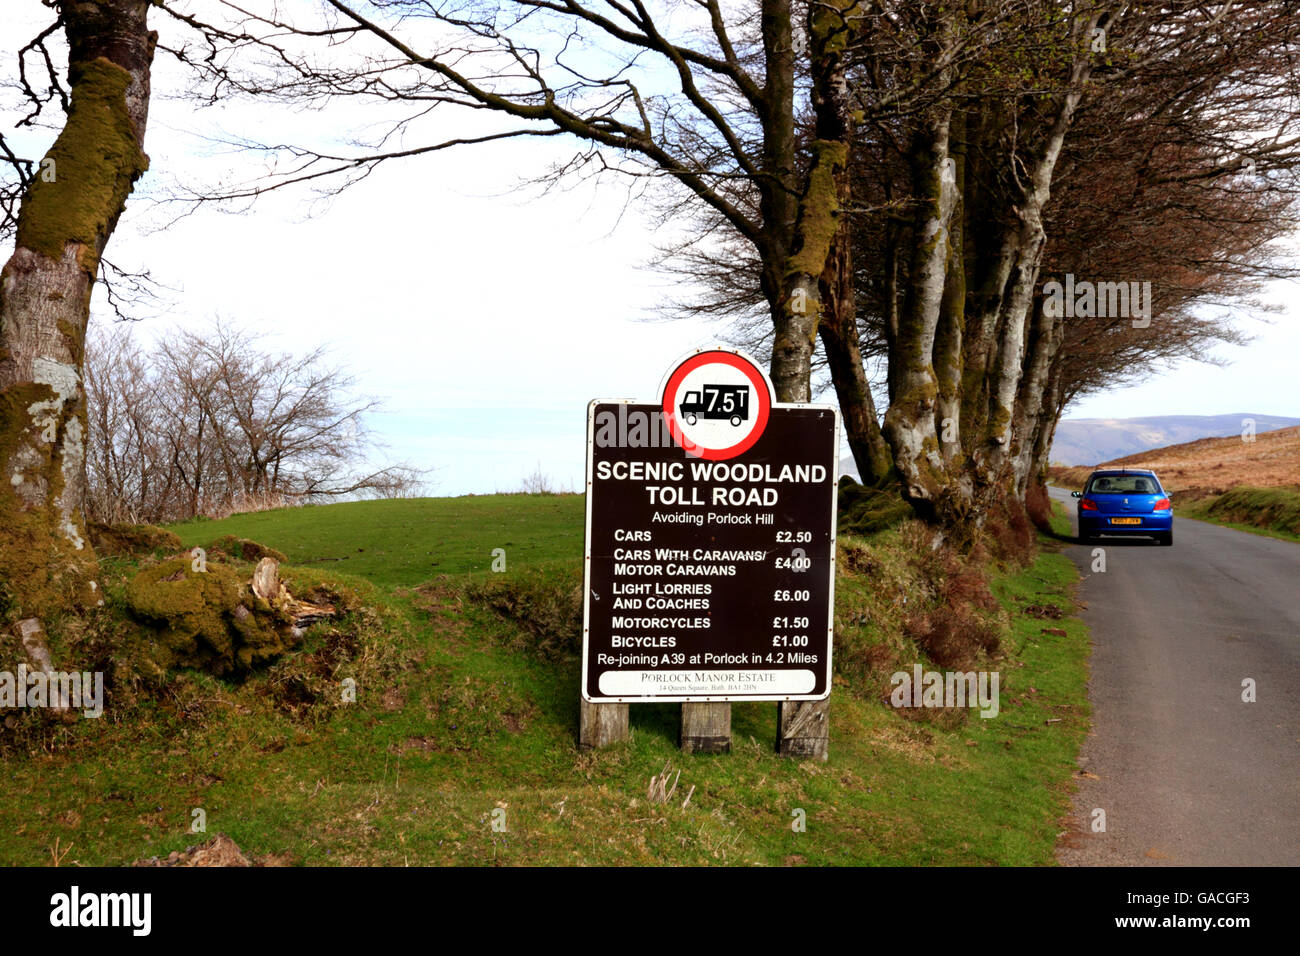 A road sign listing tolls for a scenic toll road on Exmoor. - Stock Image